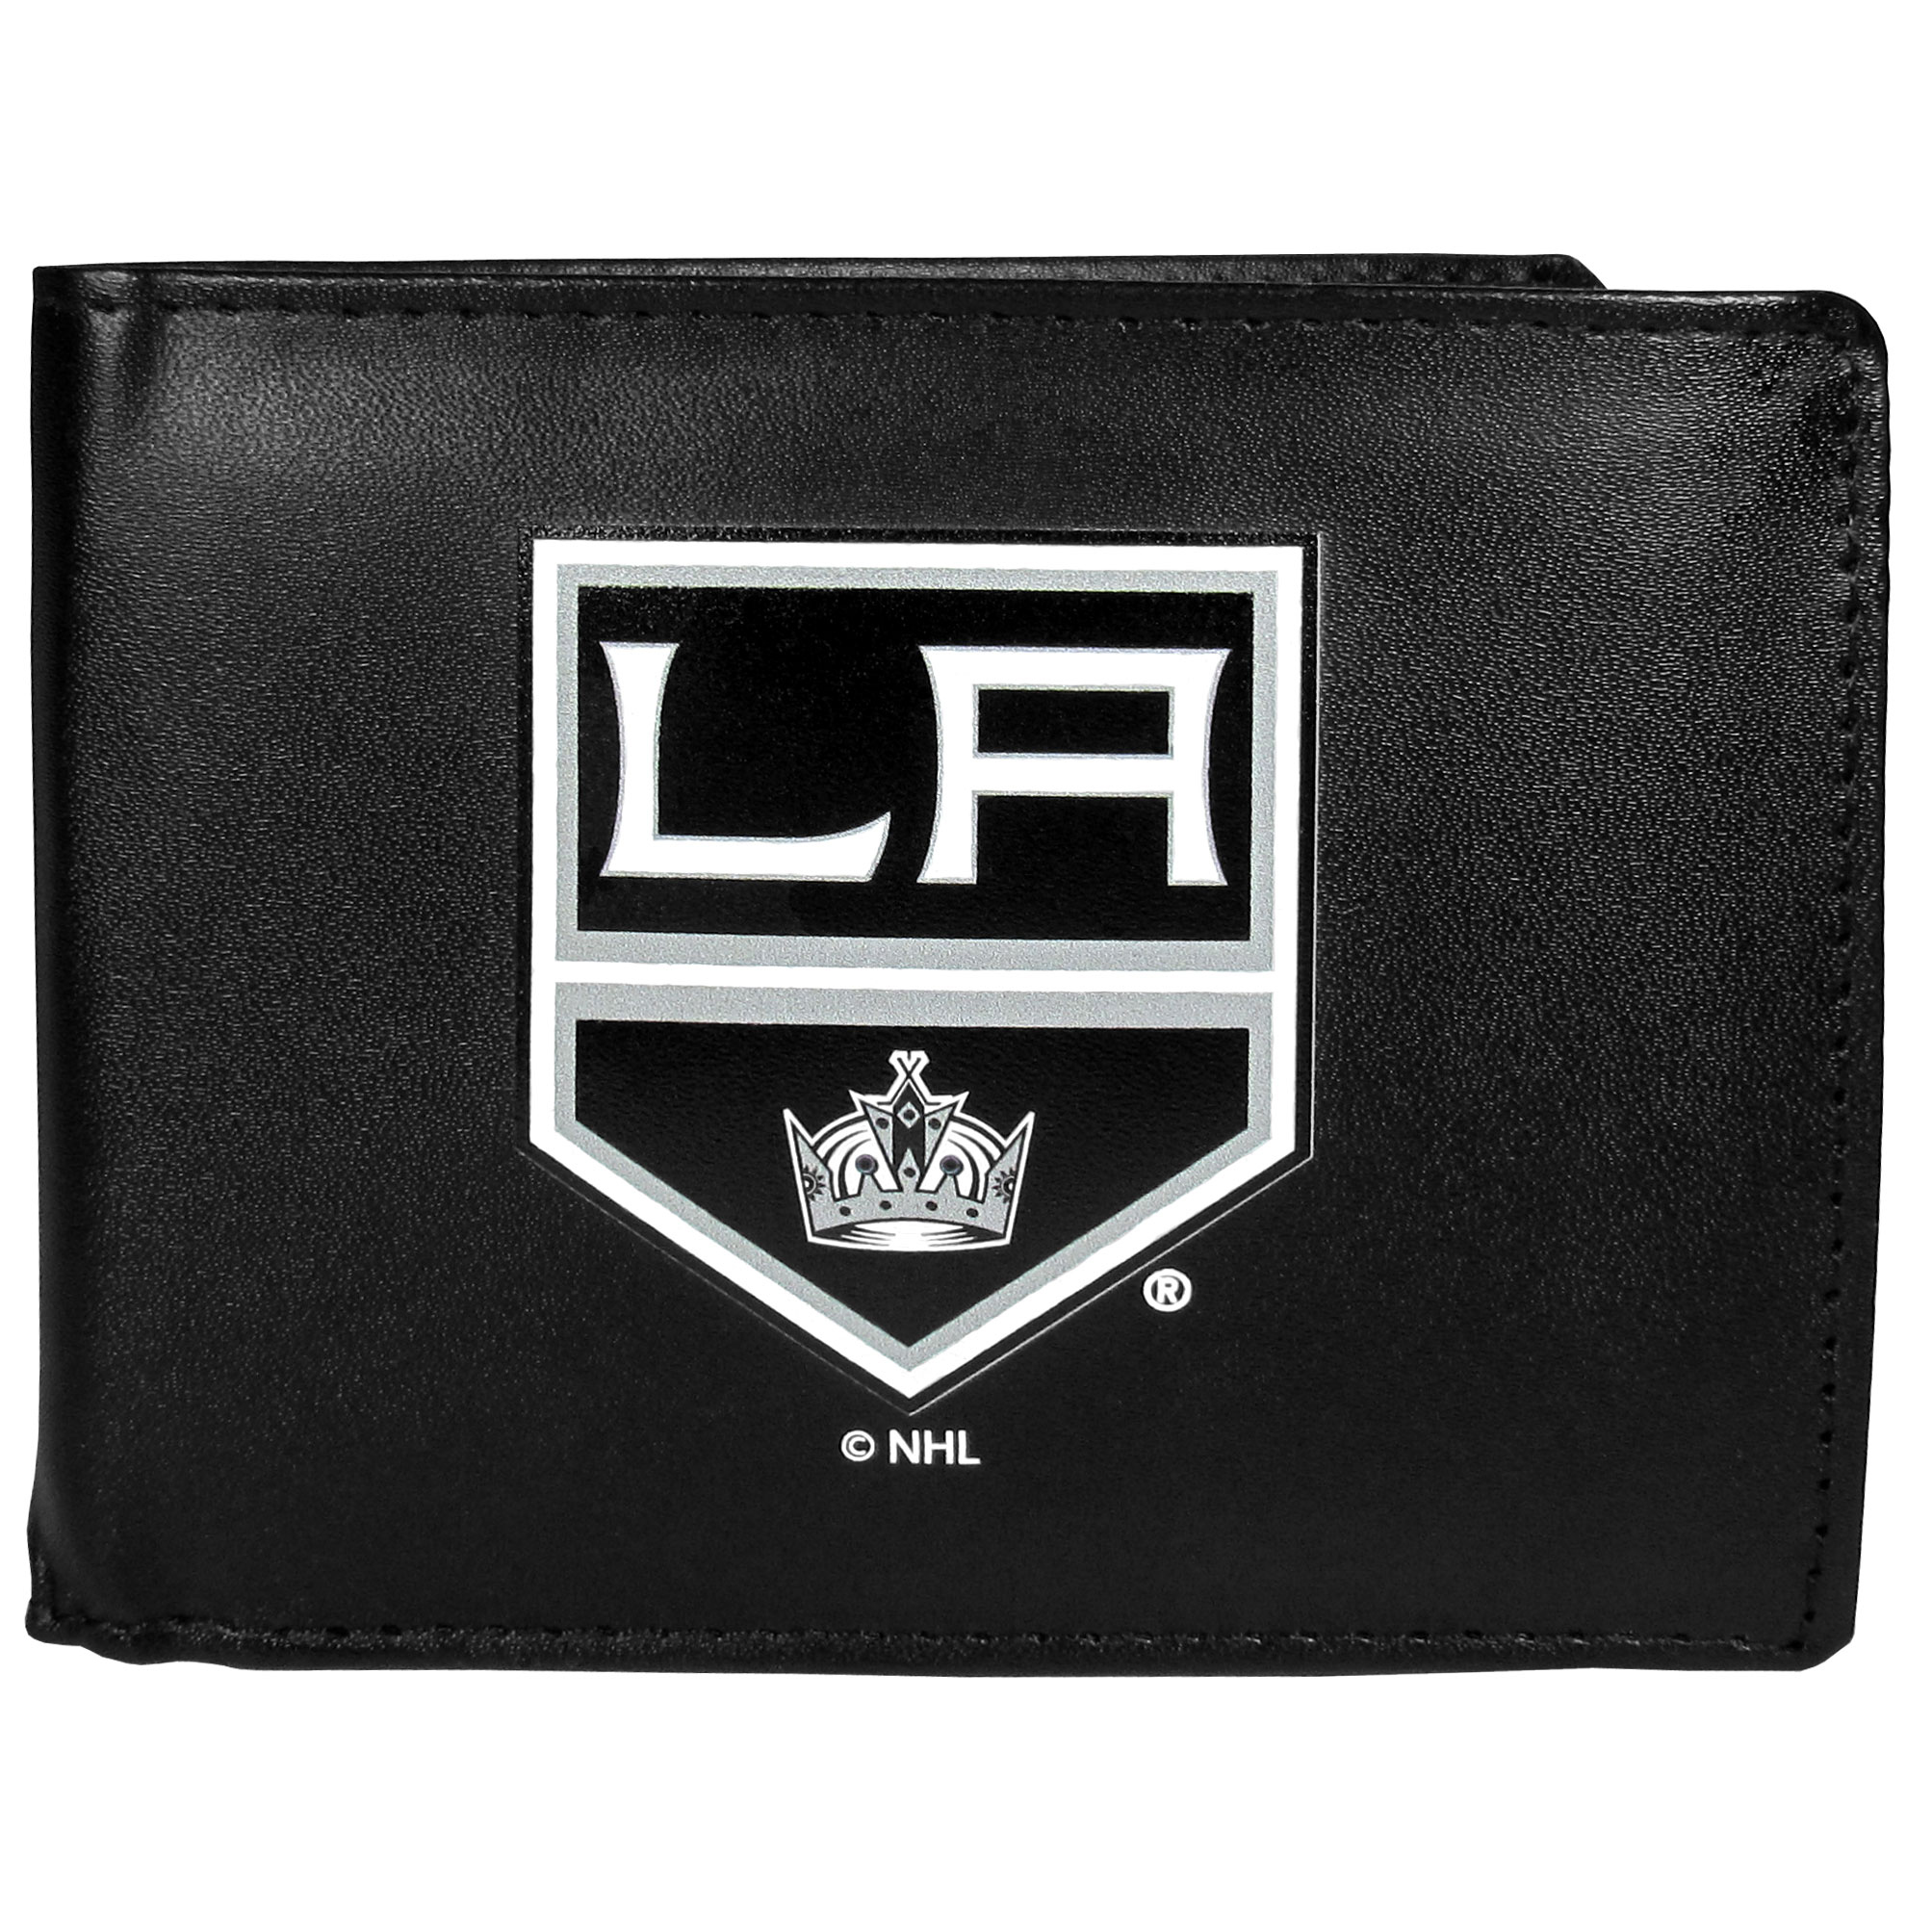 Los Angeles Kings® Leather Bi-fold Wallet, Large Logo - Our classic fine leather bi-fold wallet is meticulously crafted with genuine leather that will age beautifully so you will have a quality wallet for years to come. The wallet opens to a large, billfold pocket and numerous credit card slots and has a convenient windowed ID slot. The front of the wallet features an extra large Los Angeles Kings® printed logo.